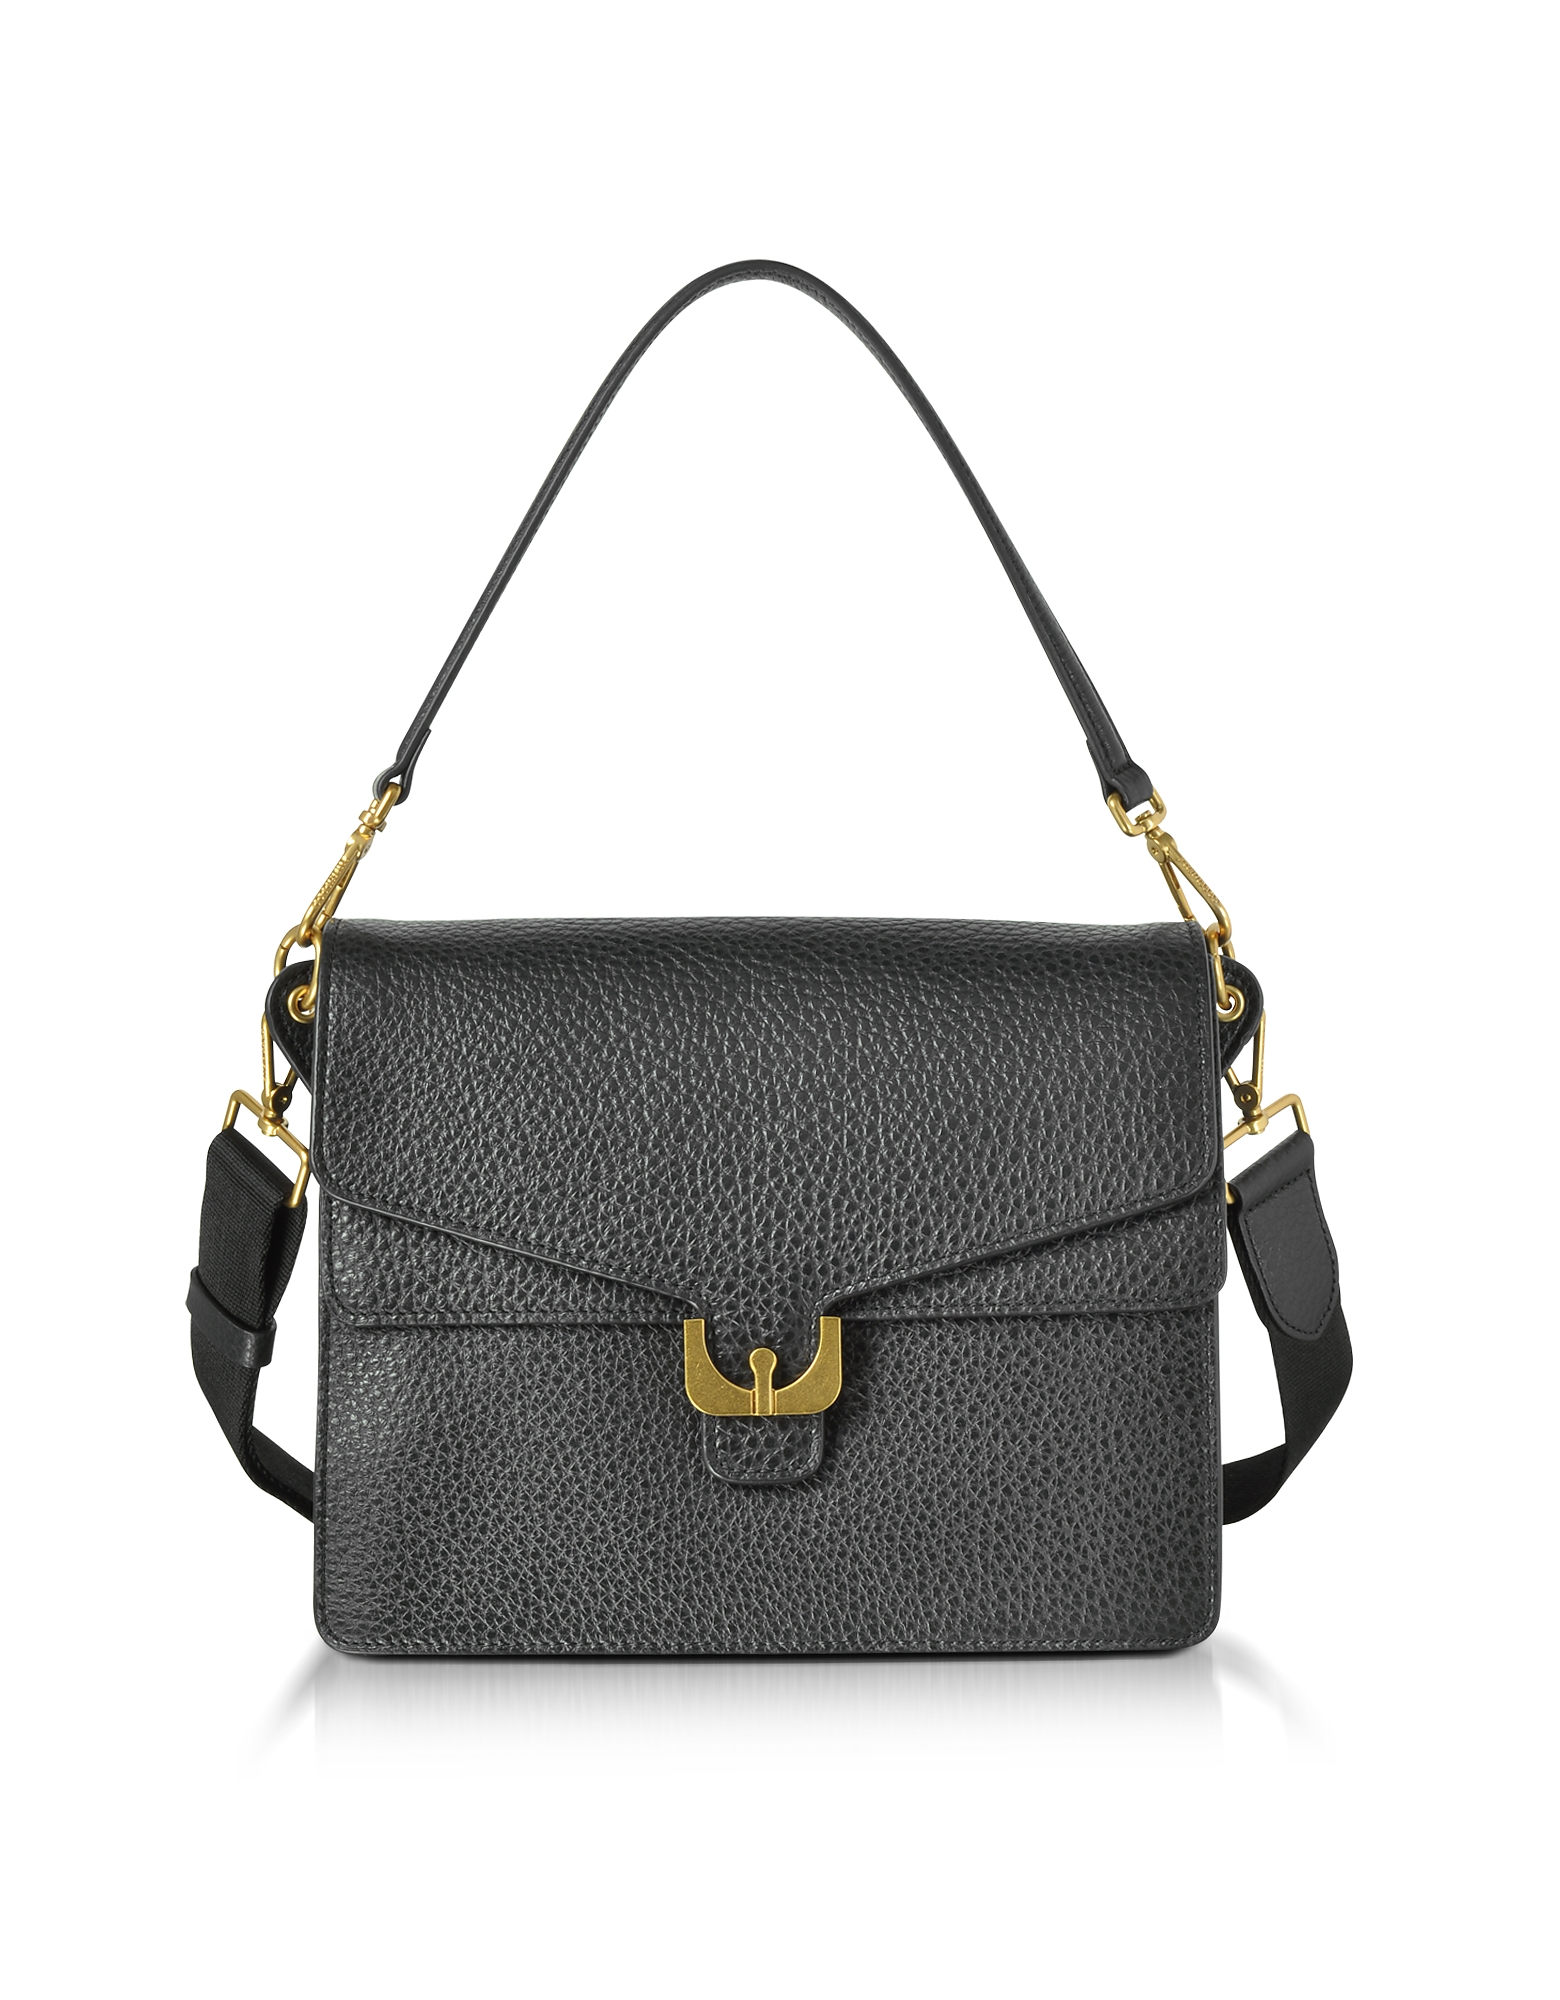 Coccinelle Handbags, Ambrine Black Bubble Leather Small Satchel Bag